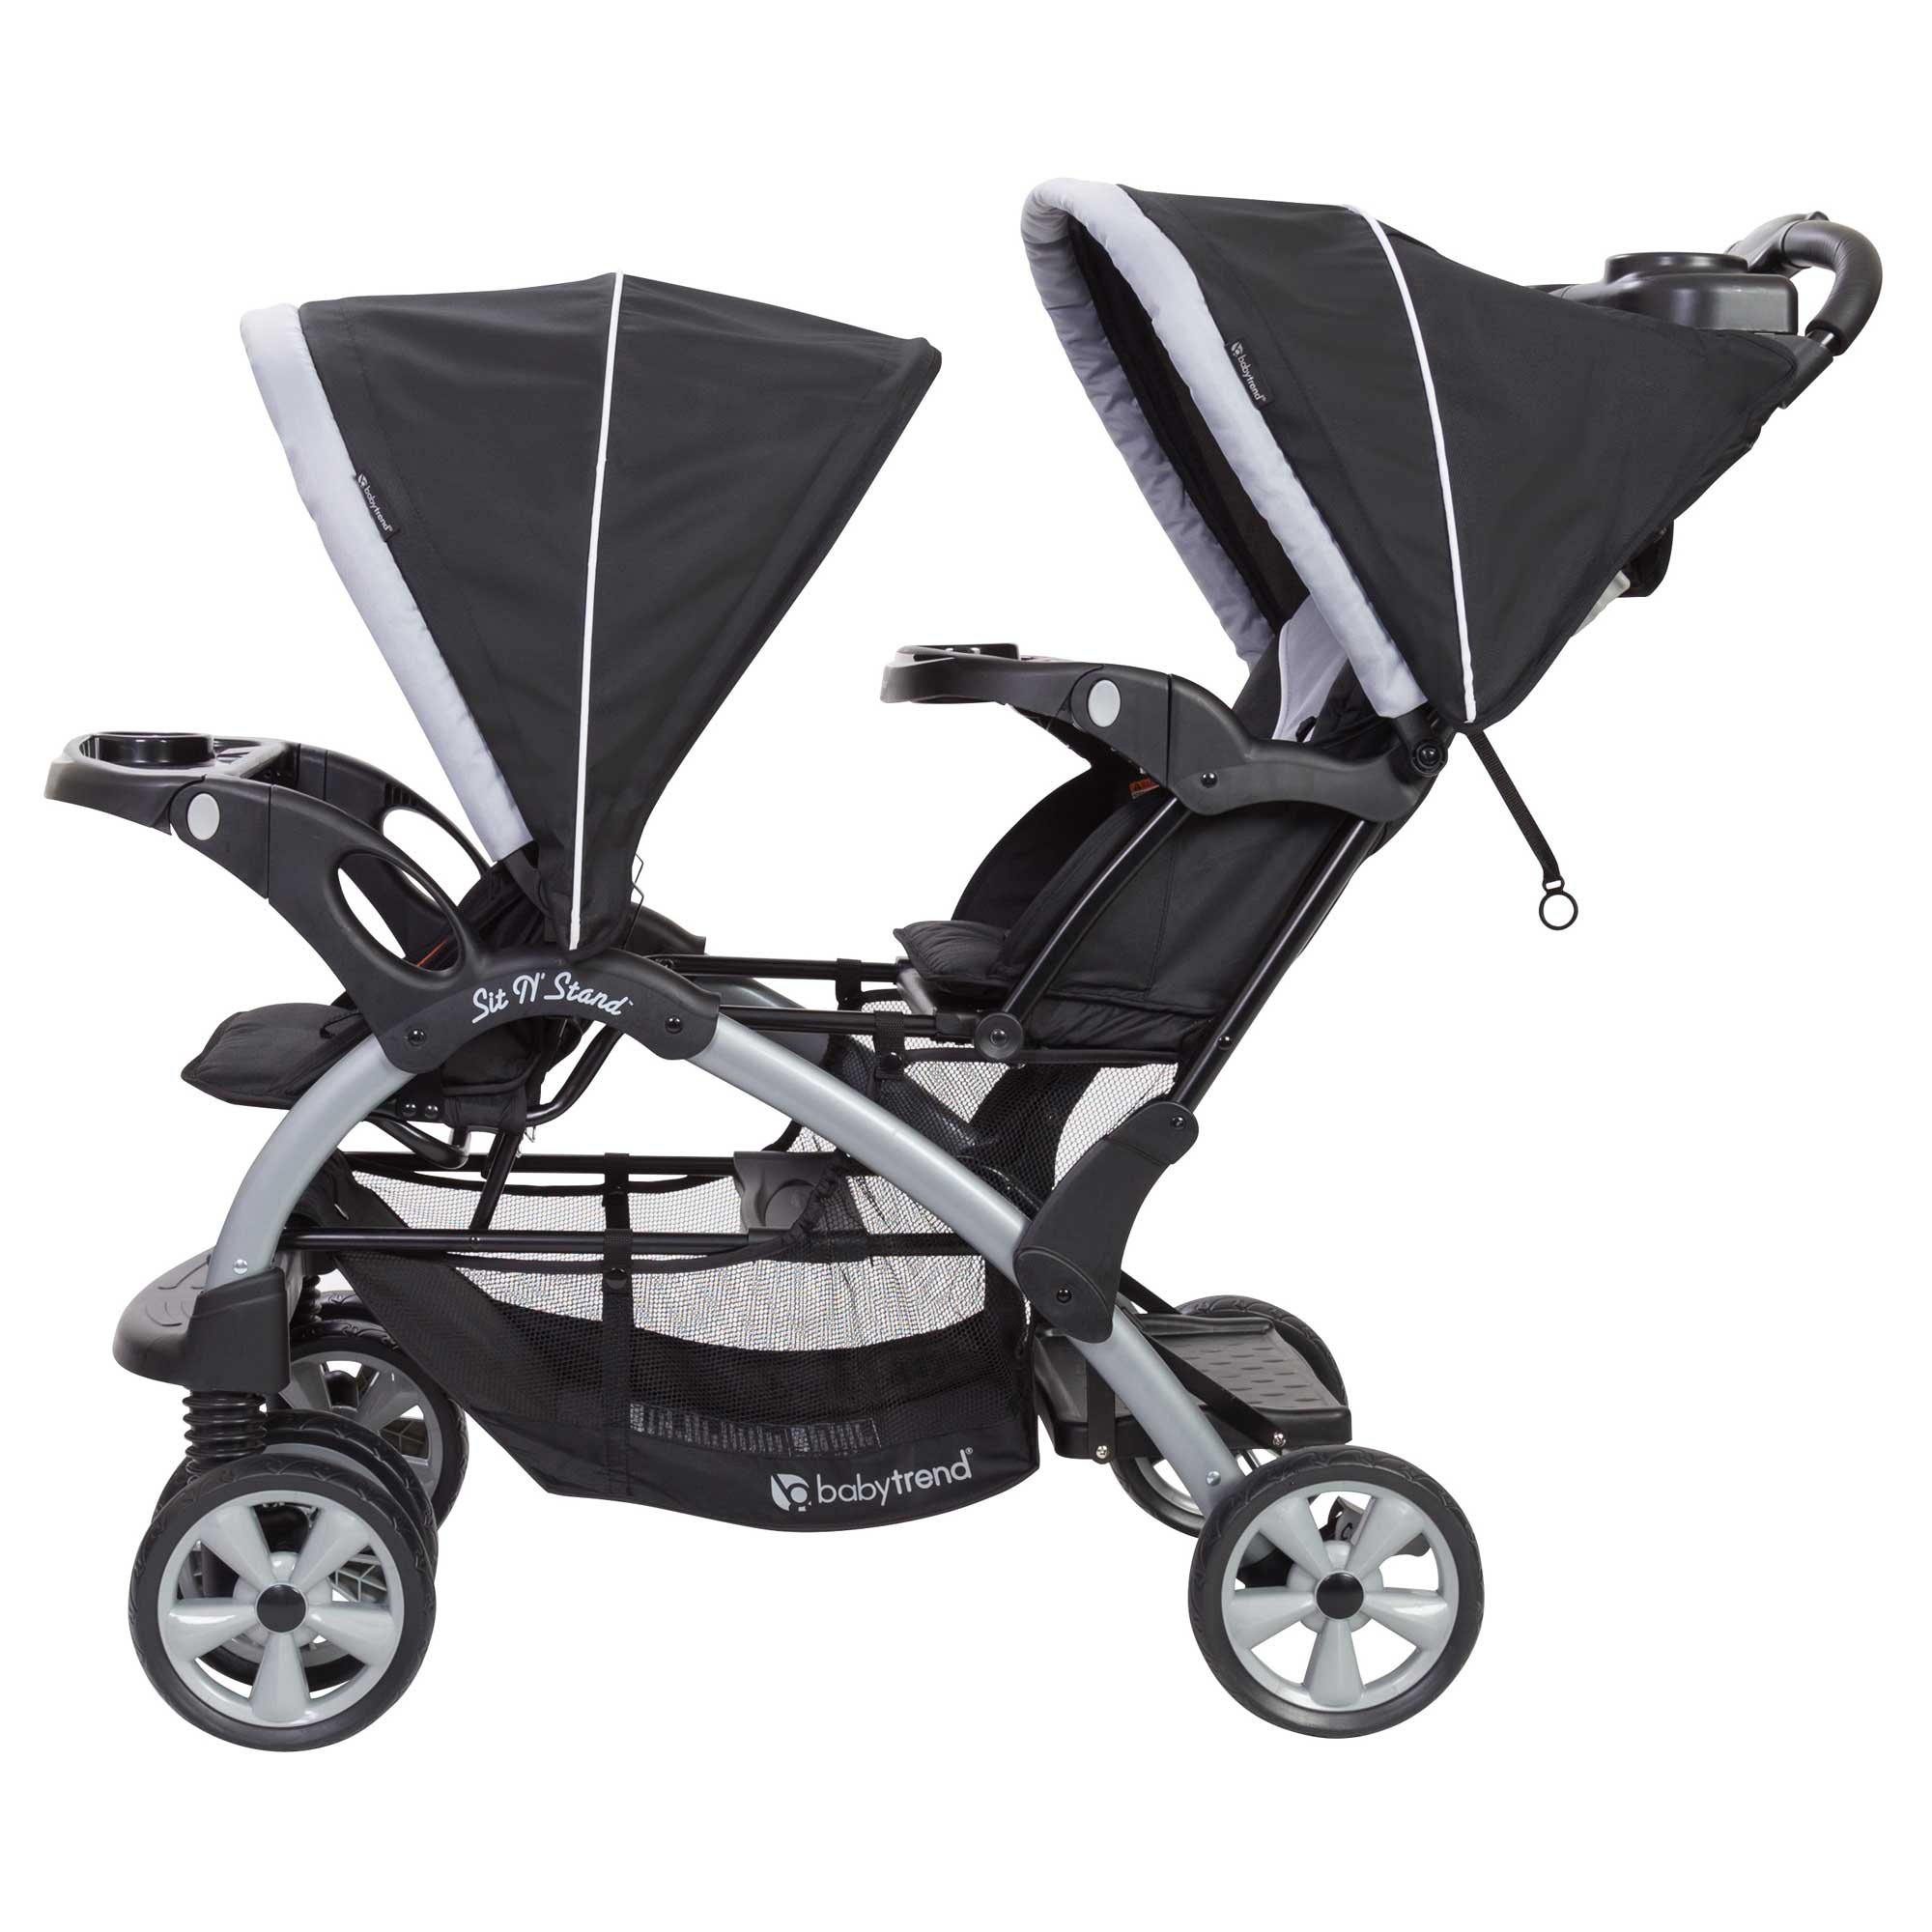 Baby Trend Sit N Stand Tandem Stroller + Infant Car Seat Travel System, Stormy by Baby Trend (Image #3)